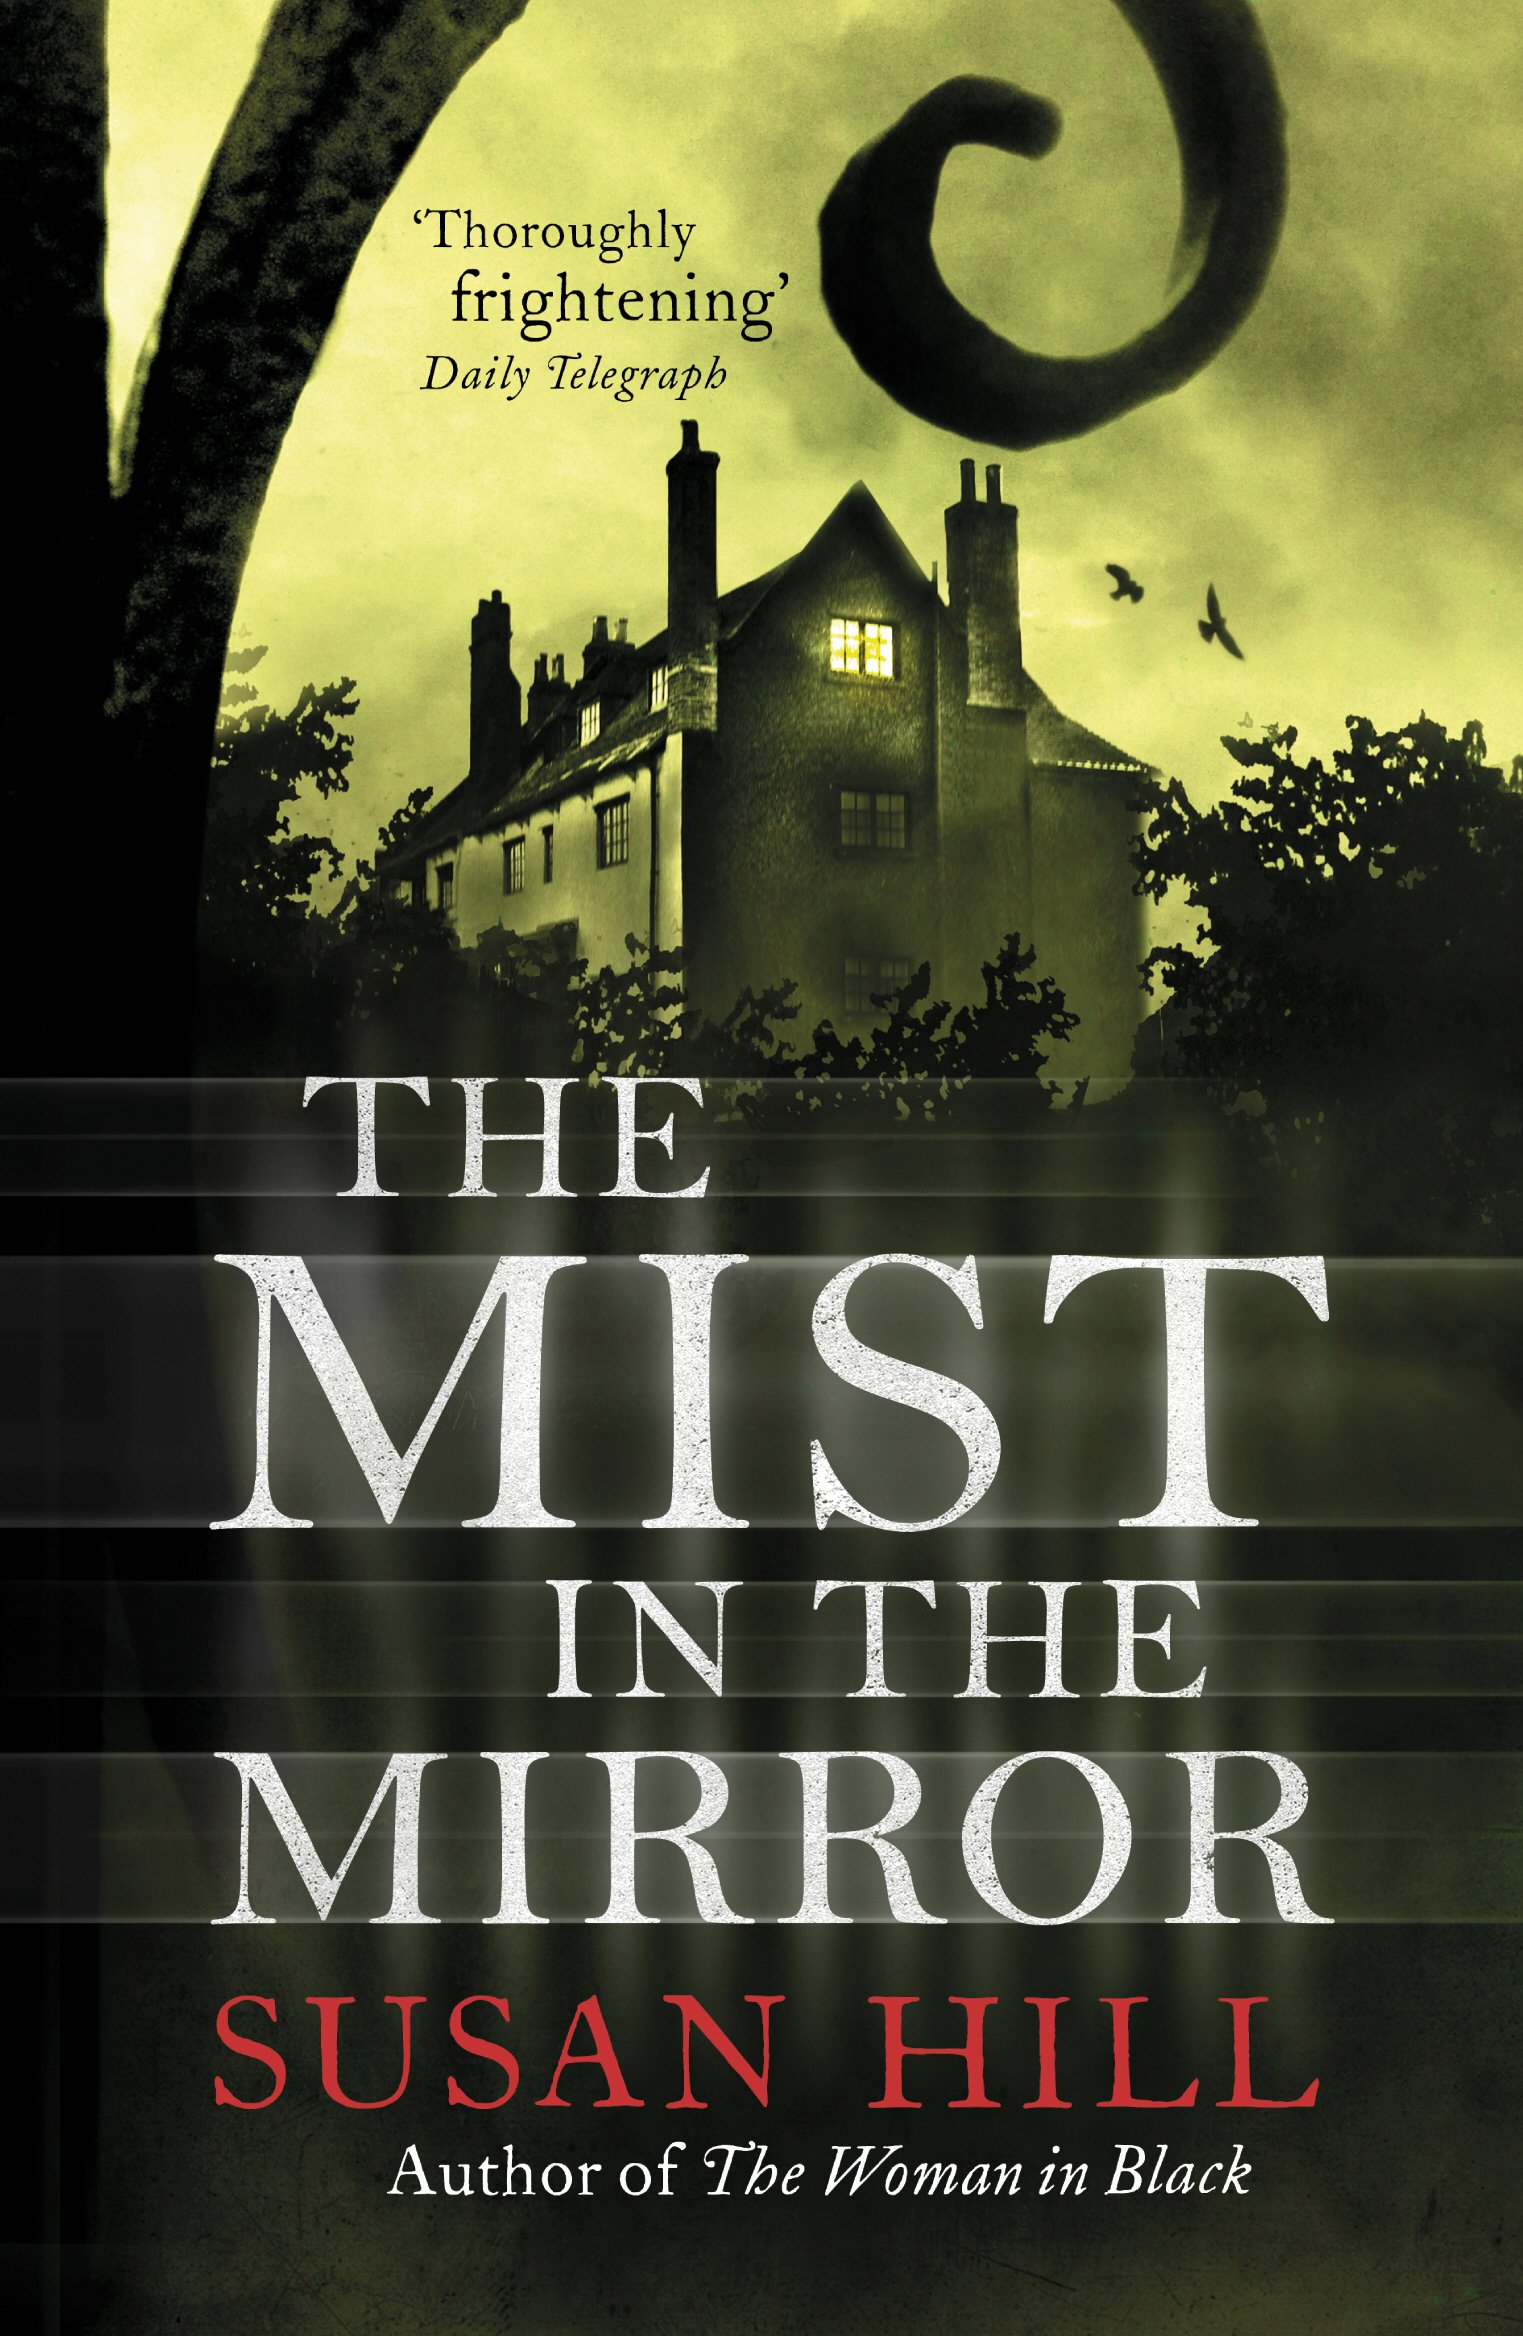 Front cover depicting a large, creepy=looking mansion seen through a wrought-iron gate